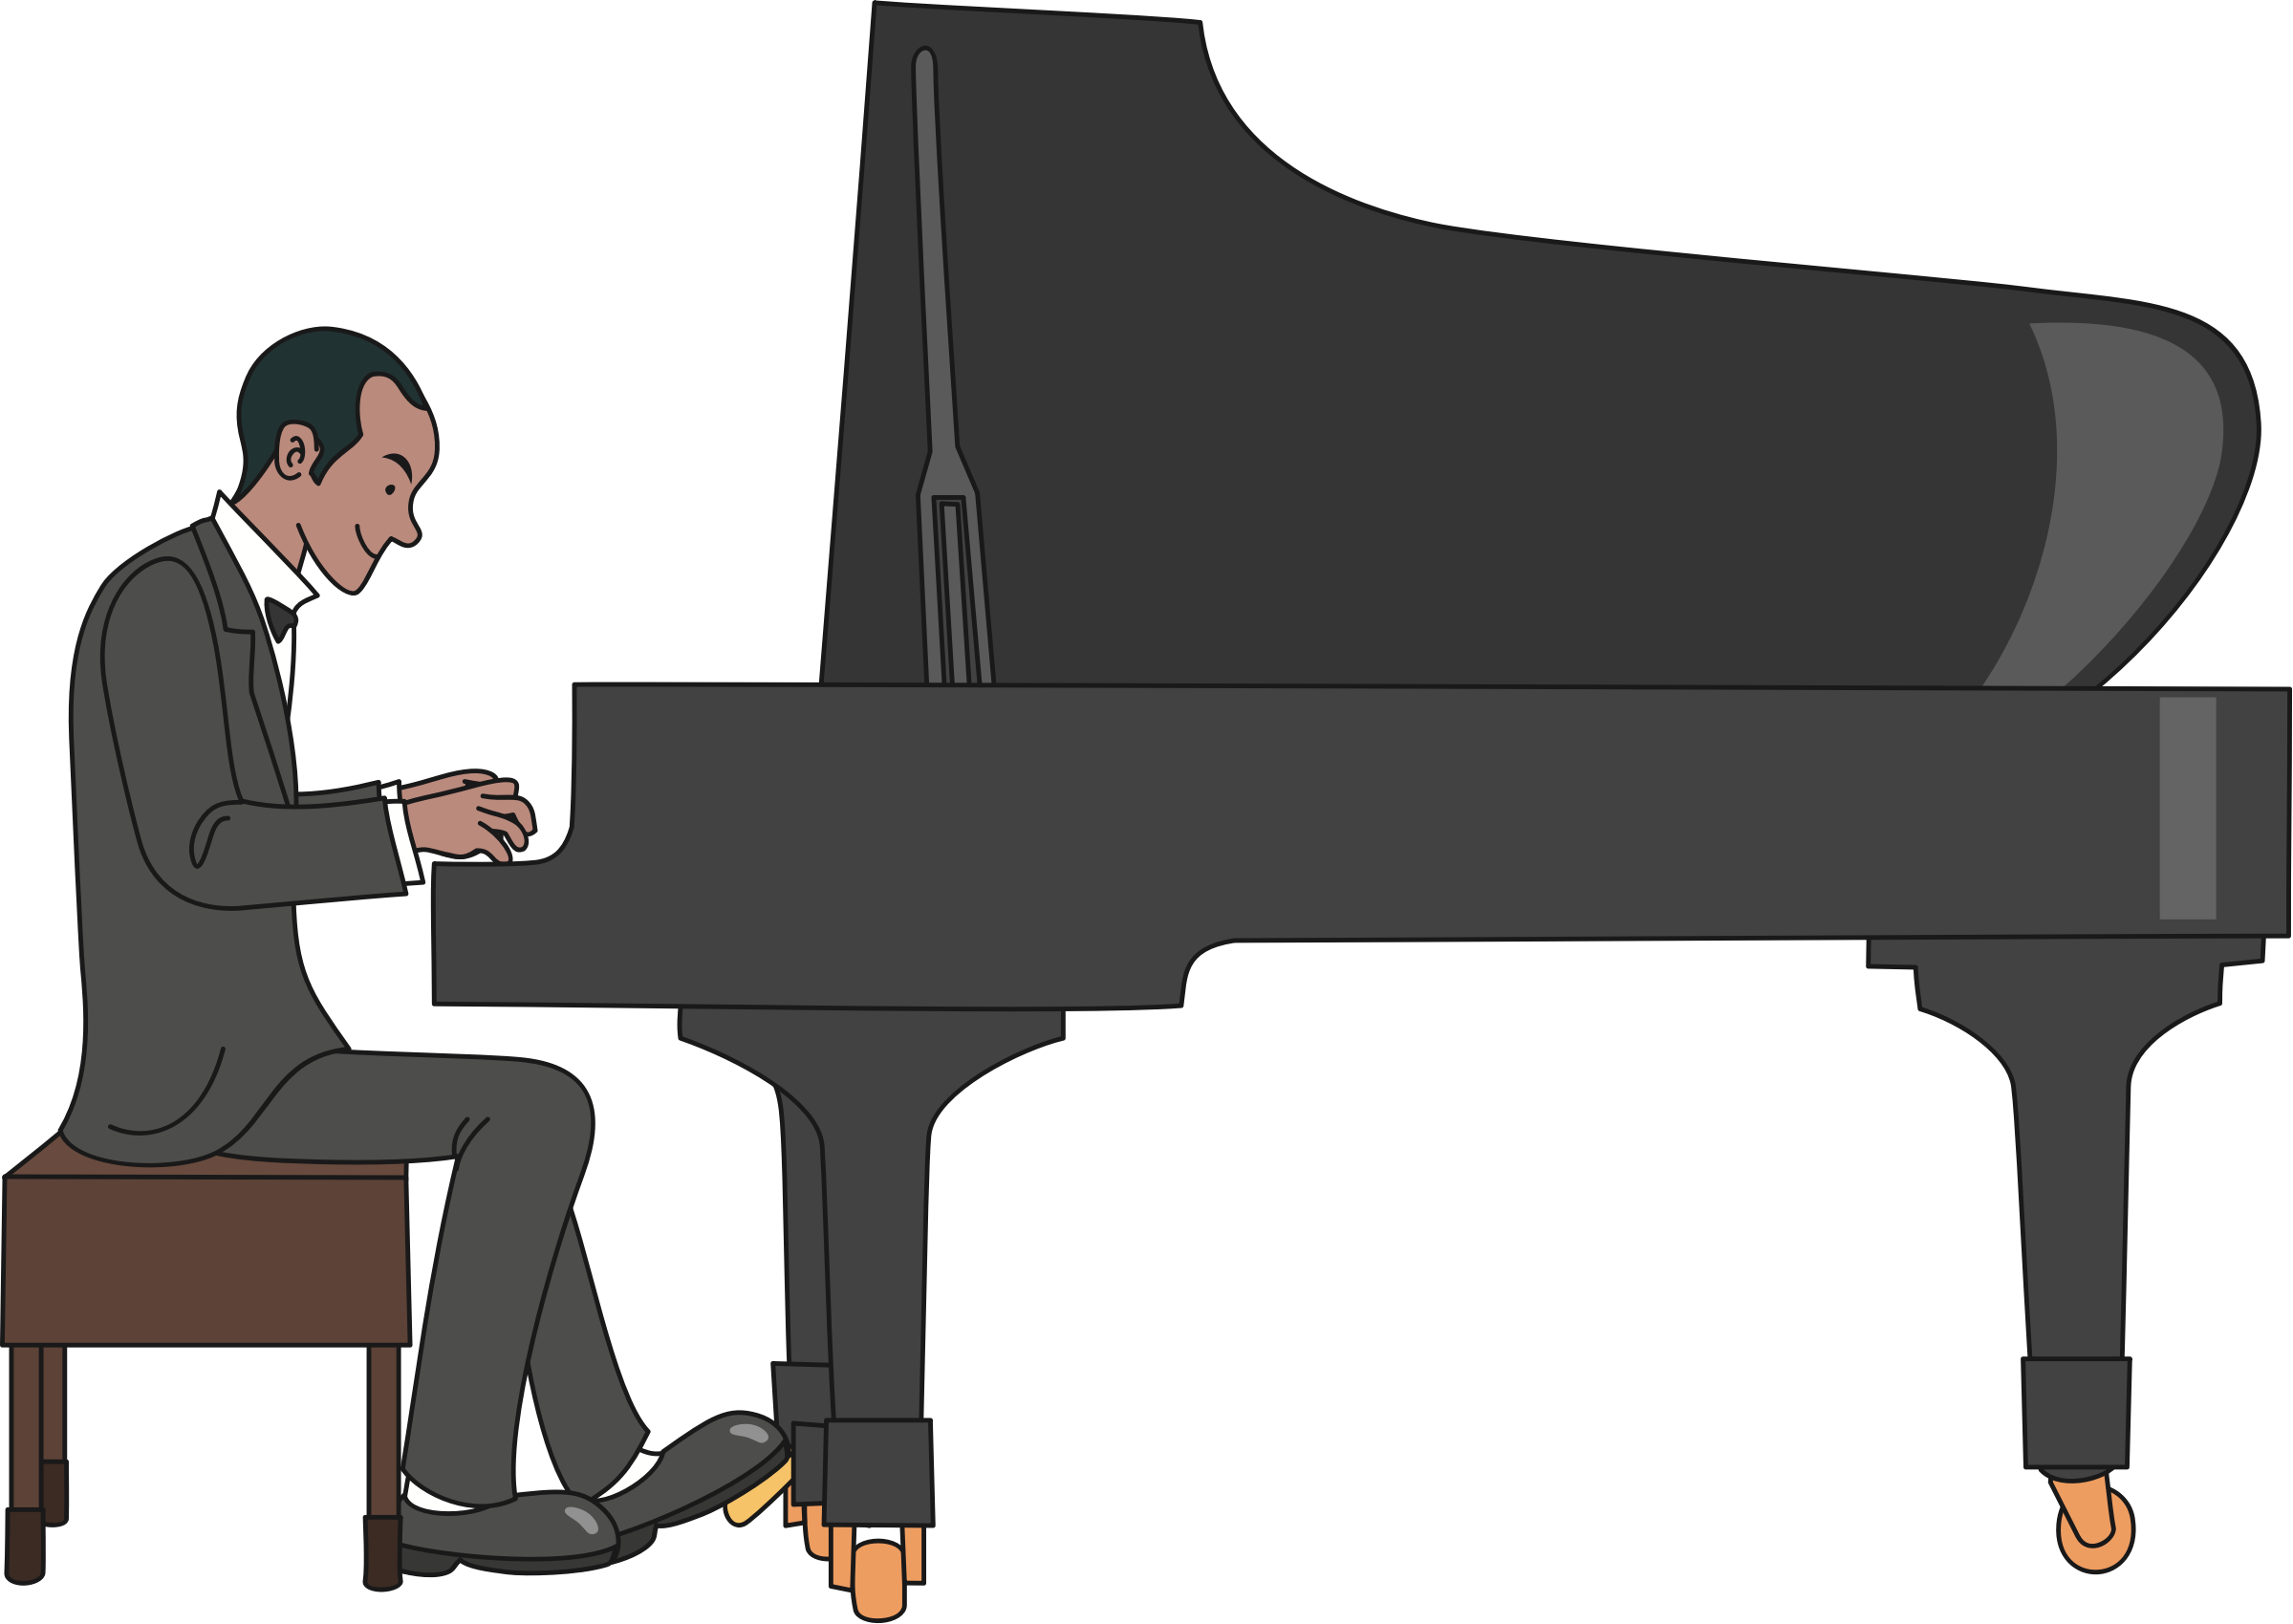 Male pianist big image. Flute clipart jazz piano